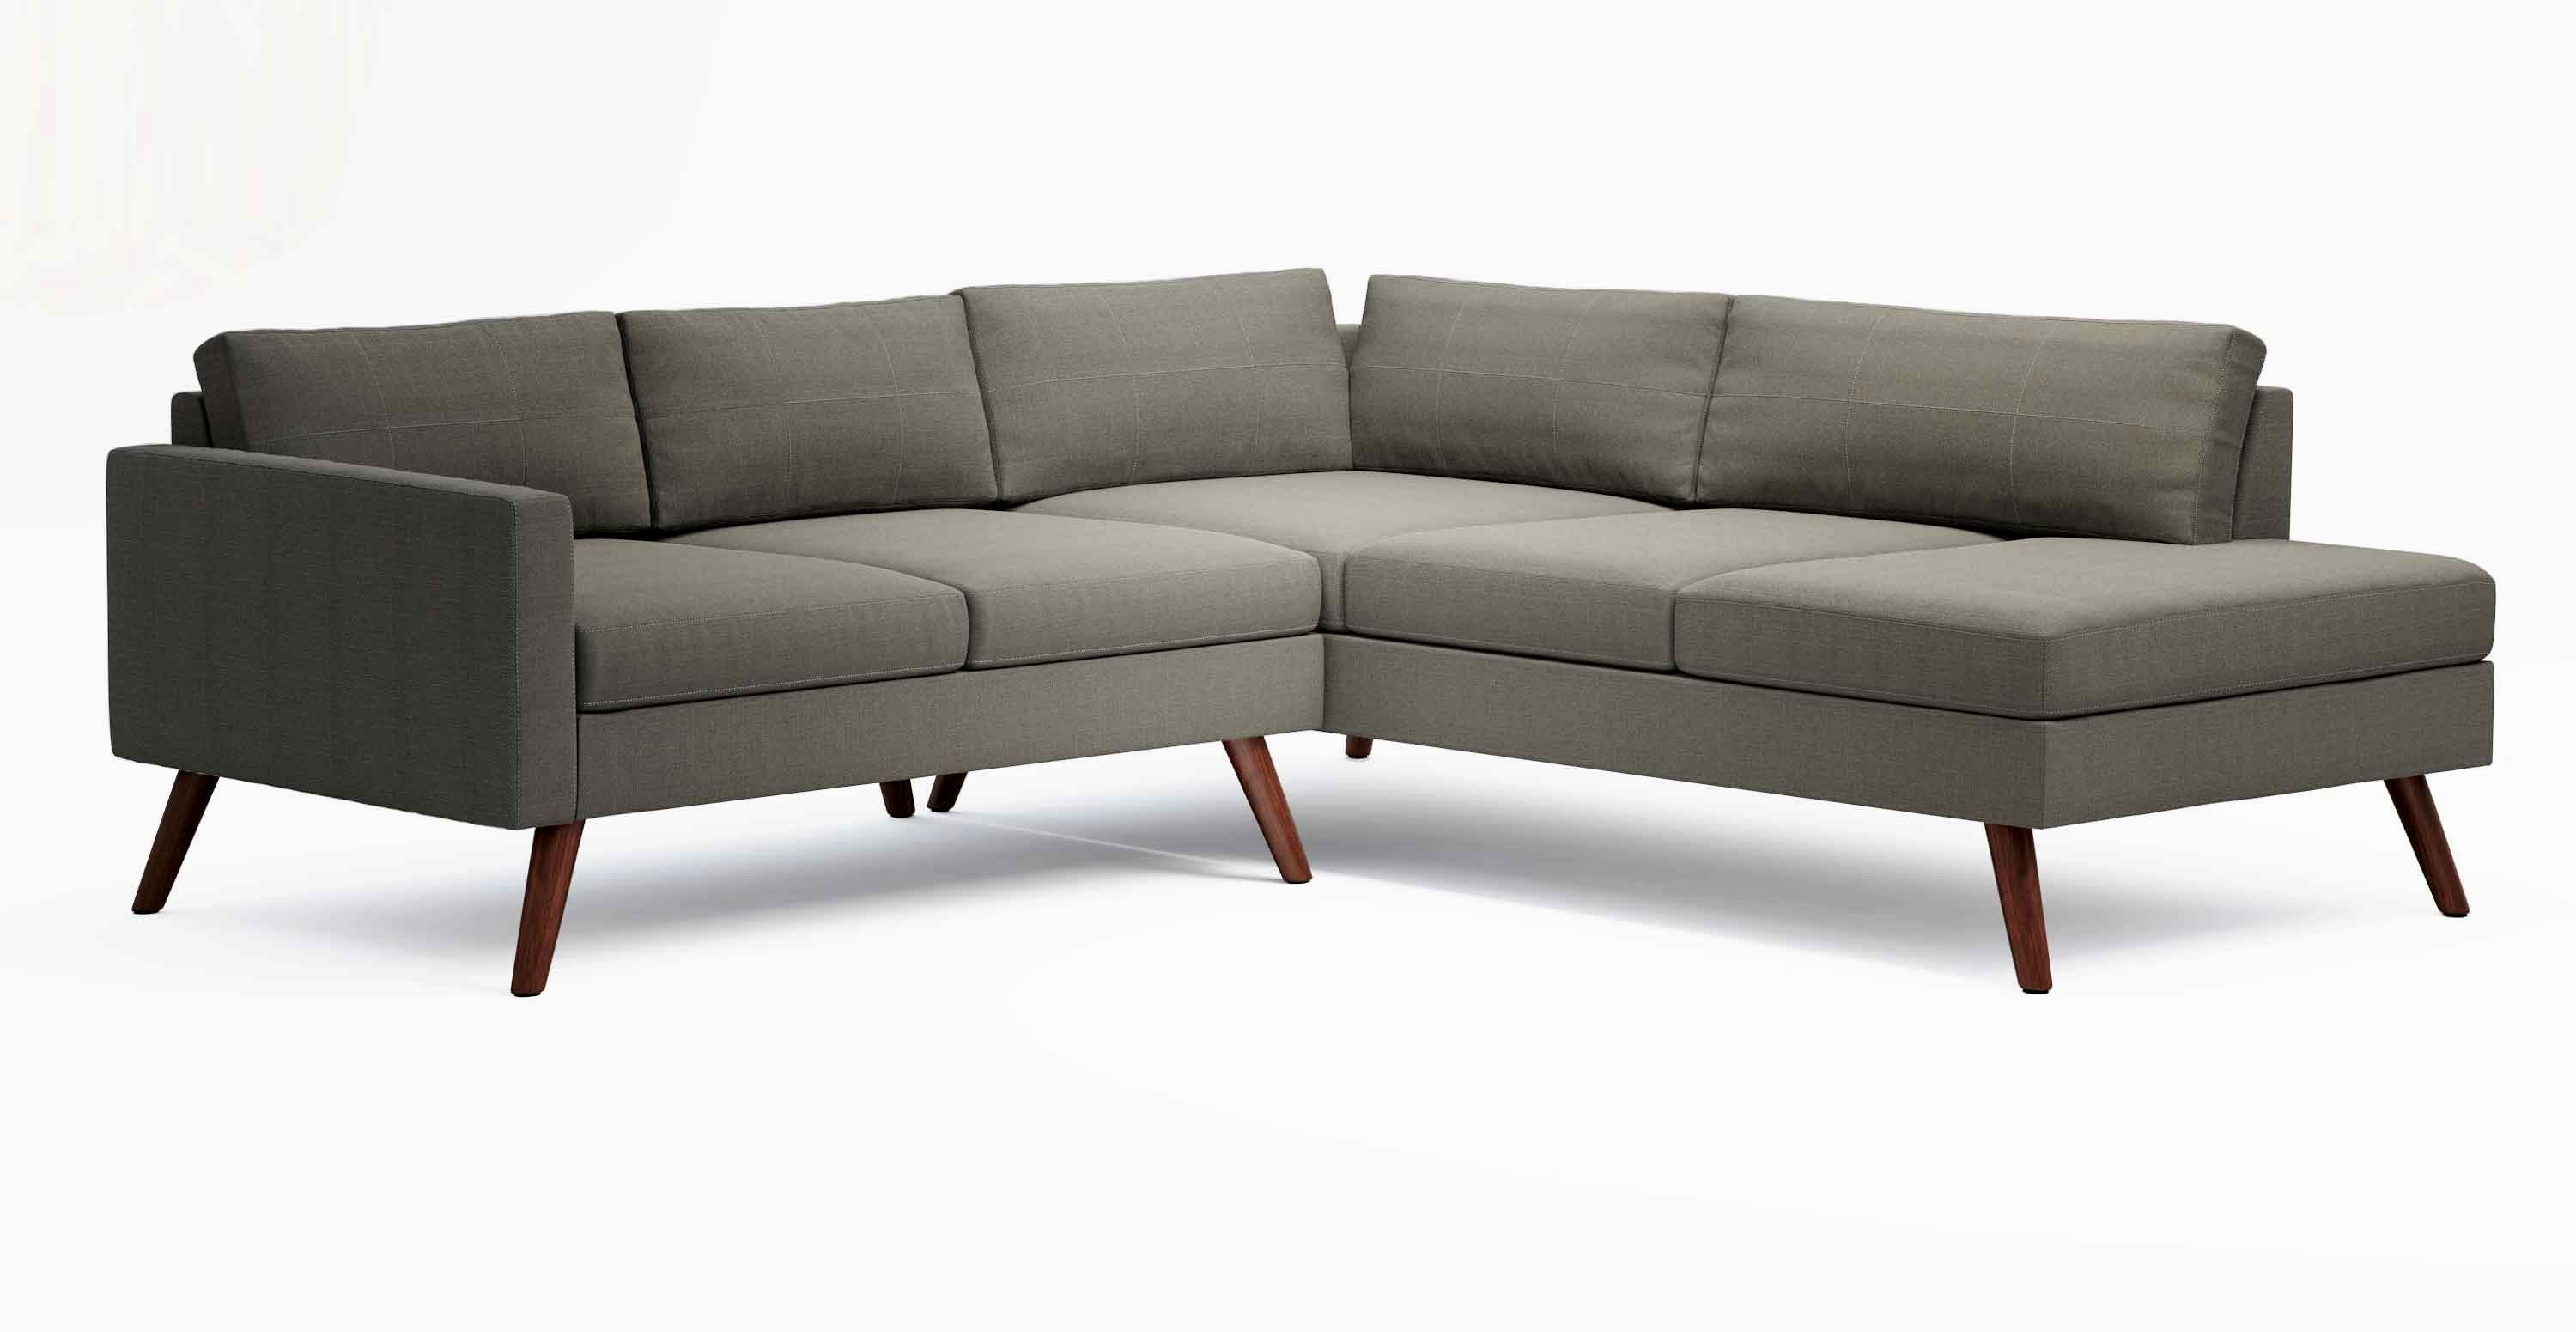 superb small sofa with chaise design-Contemporary Small sofa with Chaise Picture